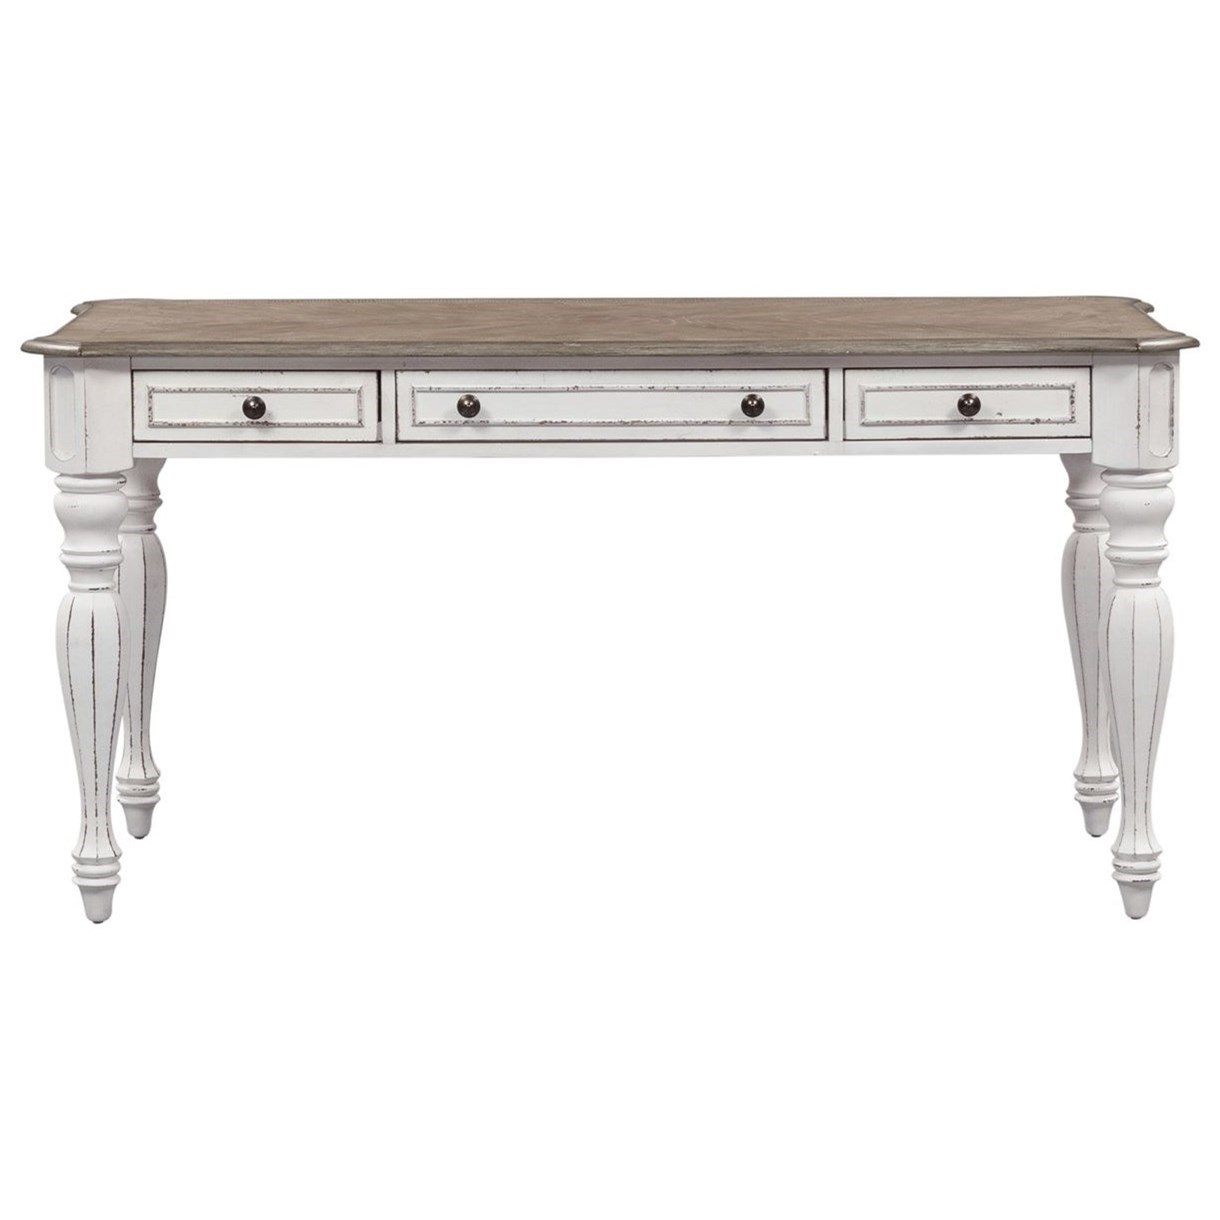 Liberty Furniture Magnolia Manor Office 275 12805 5 Writing Desk With Turned Legs Furniture Fair North Carolina Table Desks Writing Desks